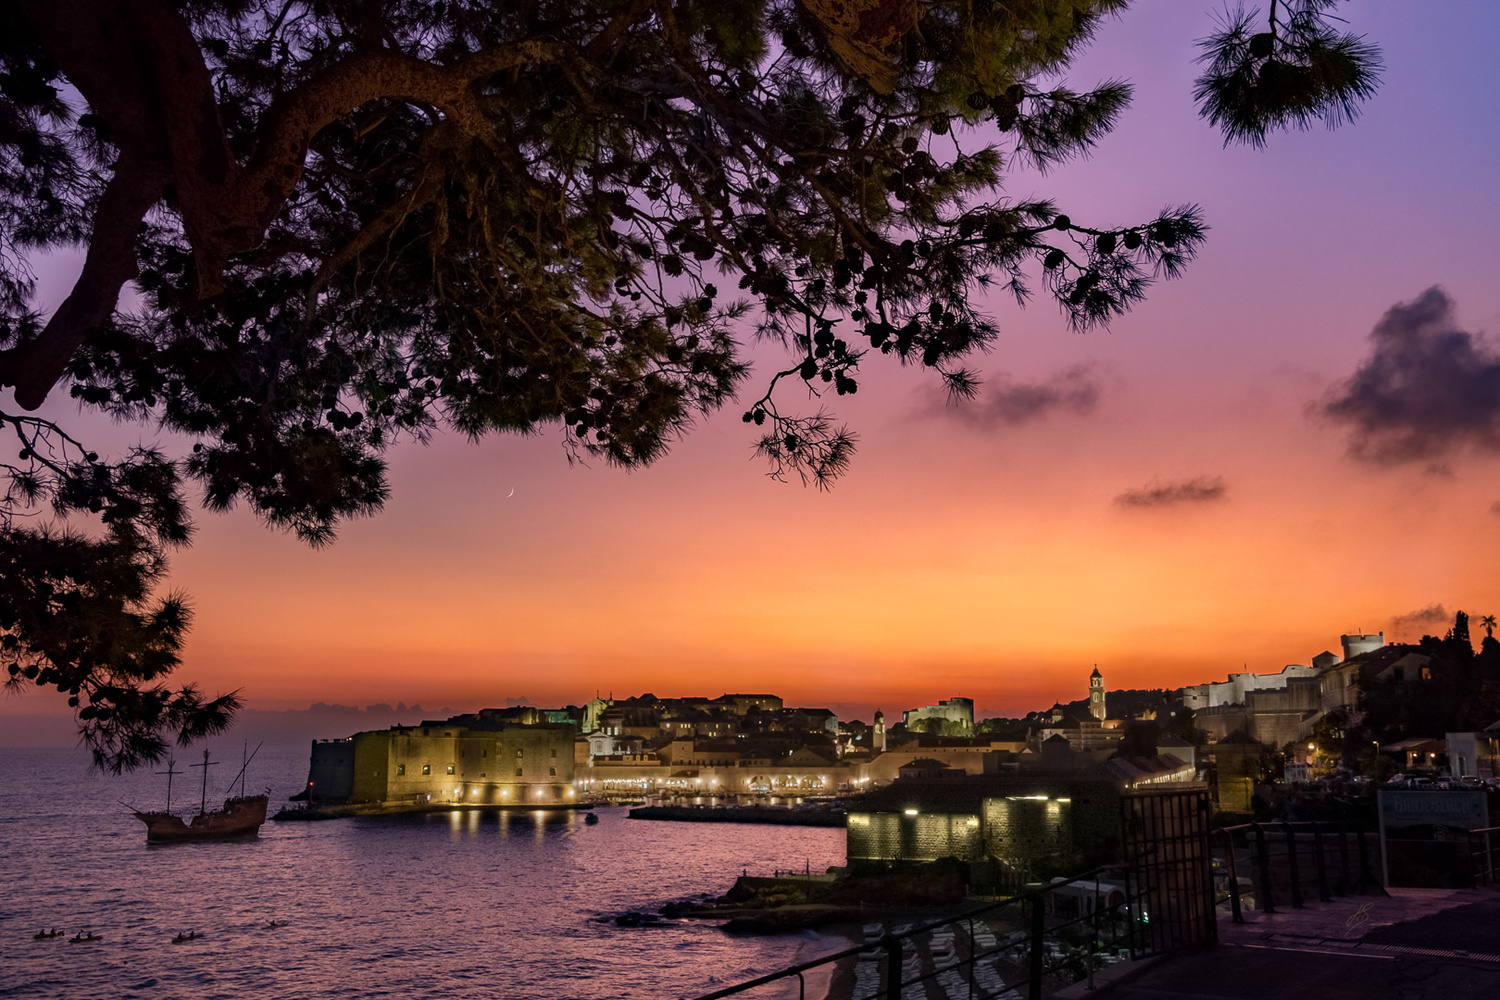 Sunset Lights of Old Tow Dubrovnik by Joao TFS